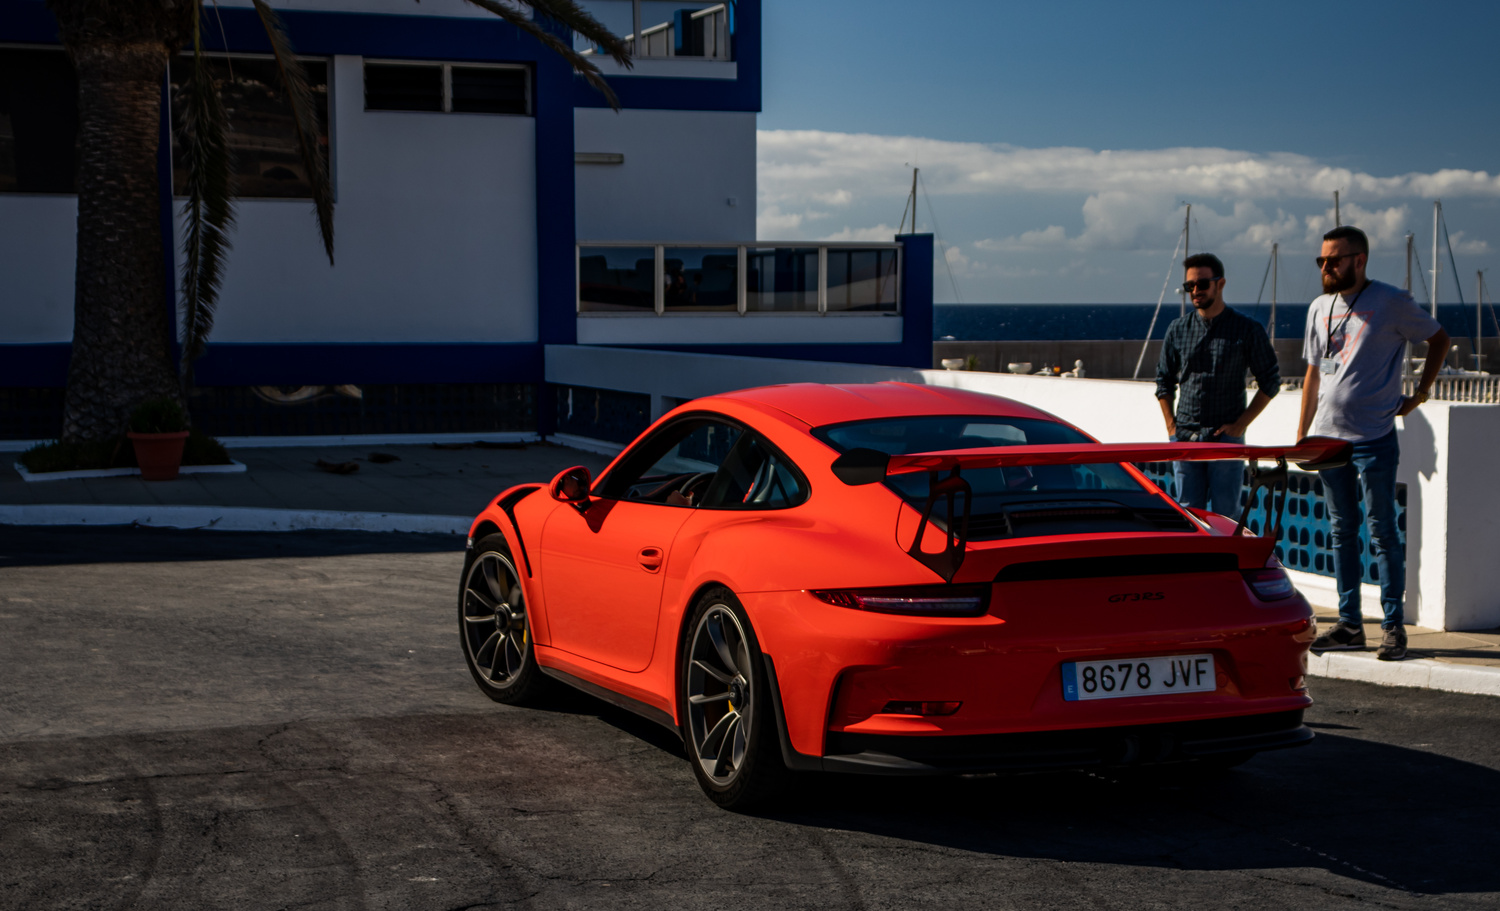 911 GT3 RS by Edson Afonso